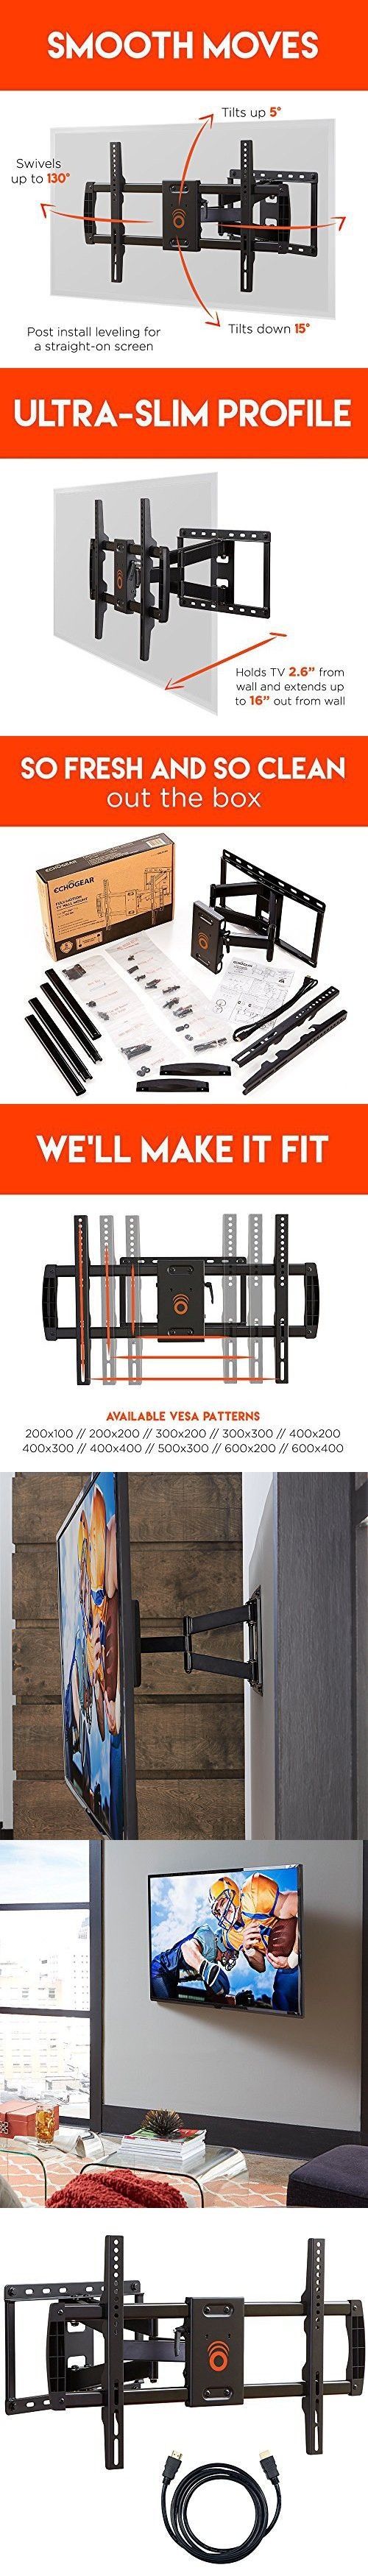 "ECHOGEAR Full Motion Articulating TV Wall Mount Bracket for most 37-70 inch LED, LCD, OLED and Plasma Flat Screen TVs w/ VESA patterns up to 600 x 400 - 16"" Extension - EGLF1-BK"